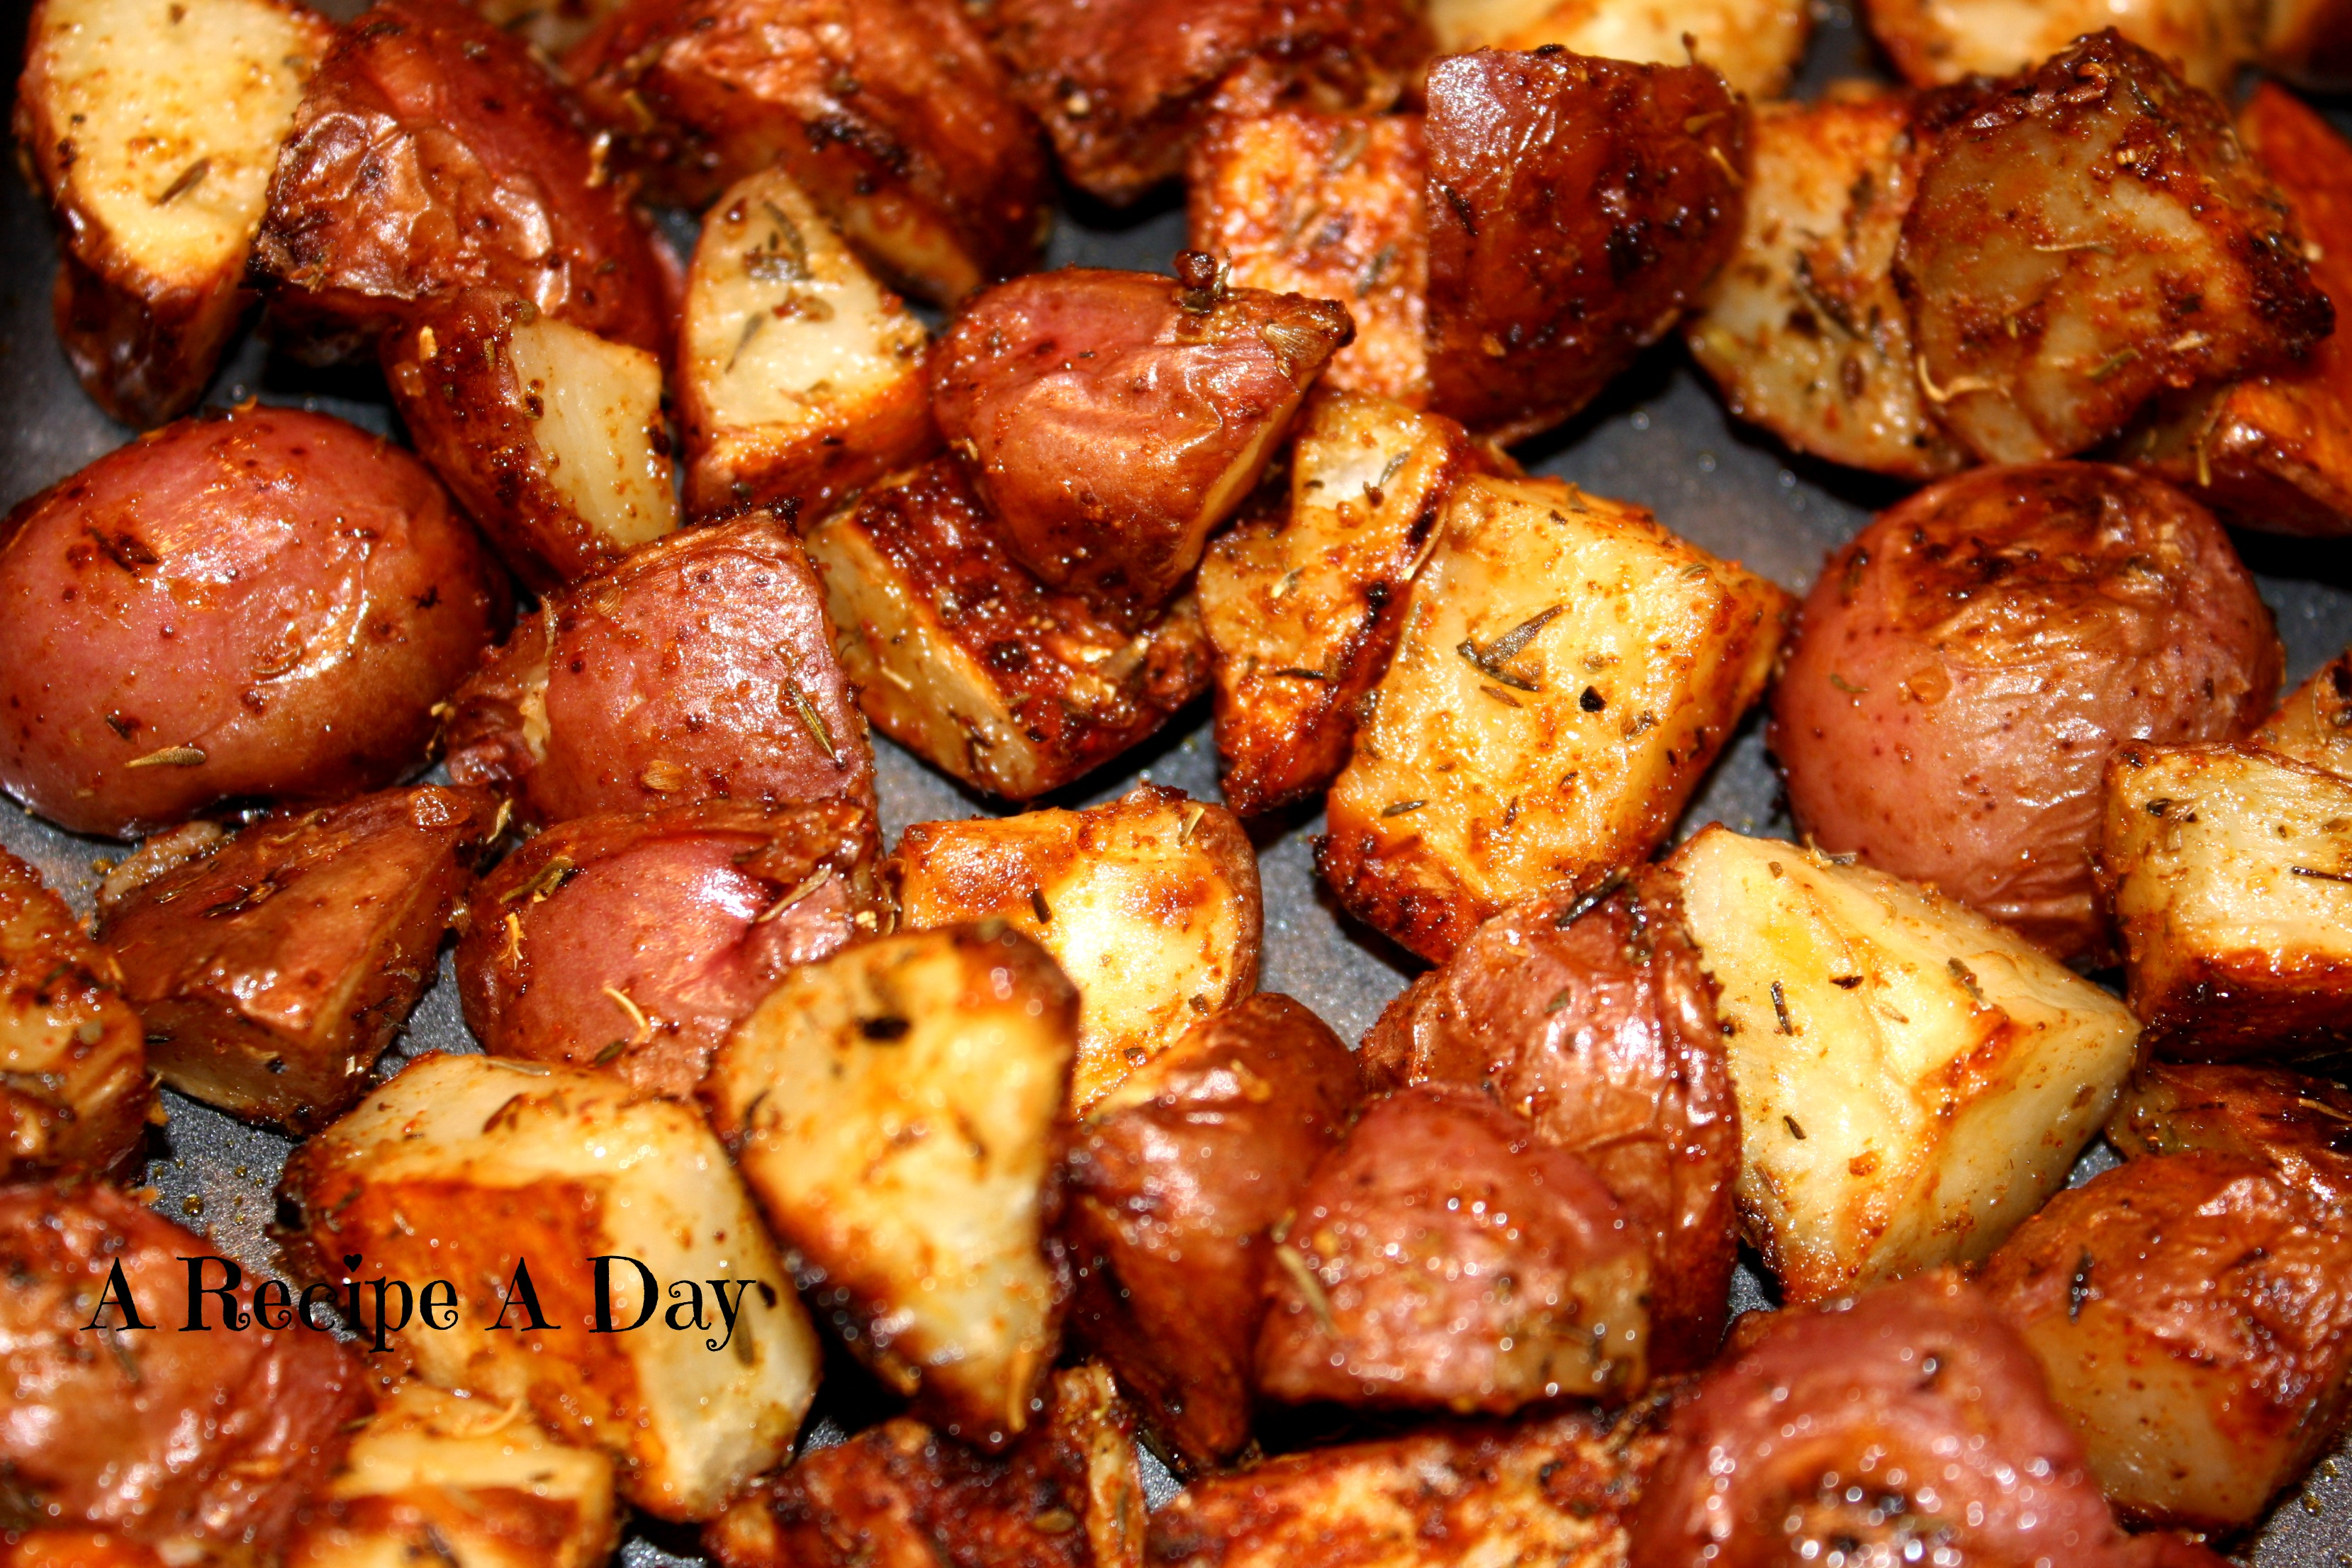 Oven Roasted Potatoes with Garlic and Herbs | A Recipe A Day